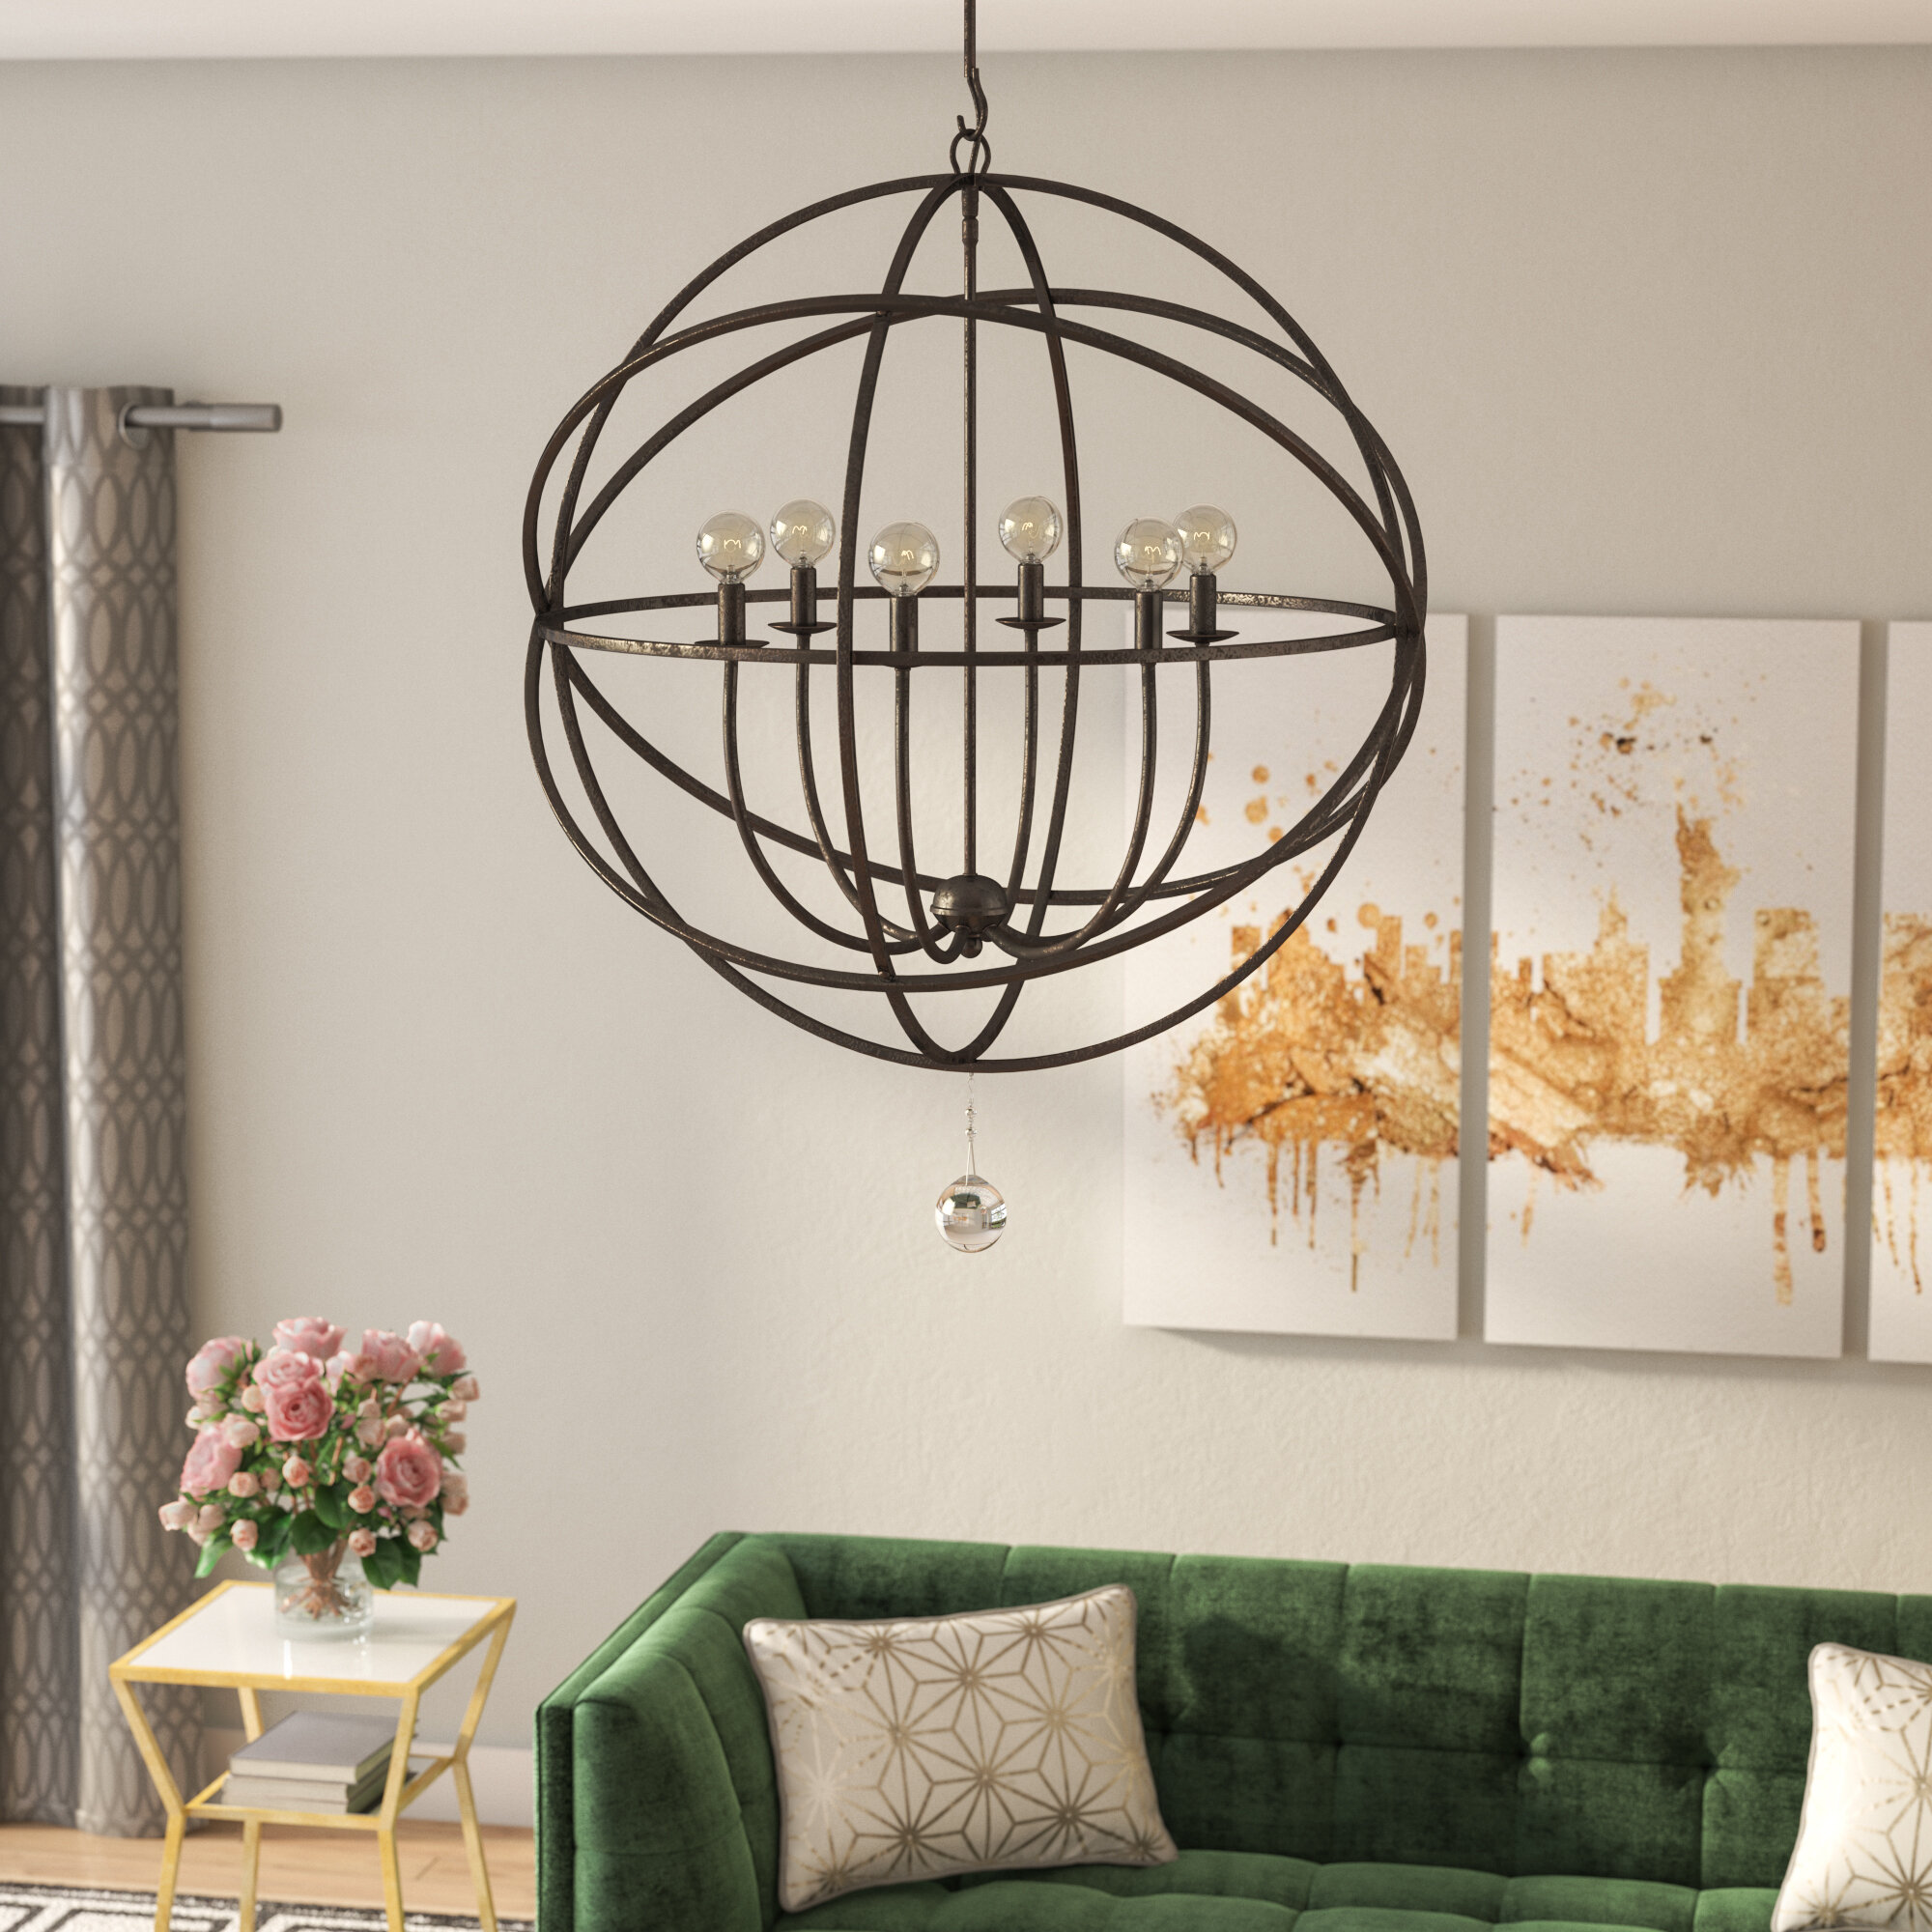 Willa Arlo Interiors Gregoire 6 Light Globe Chandelier Reviews Wayfair